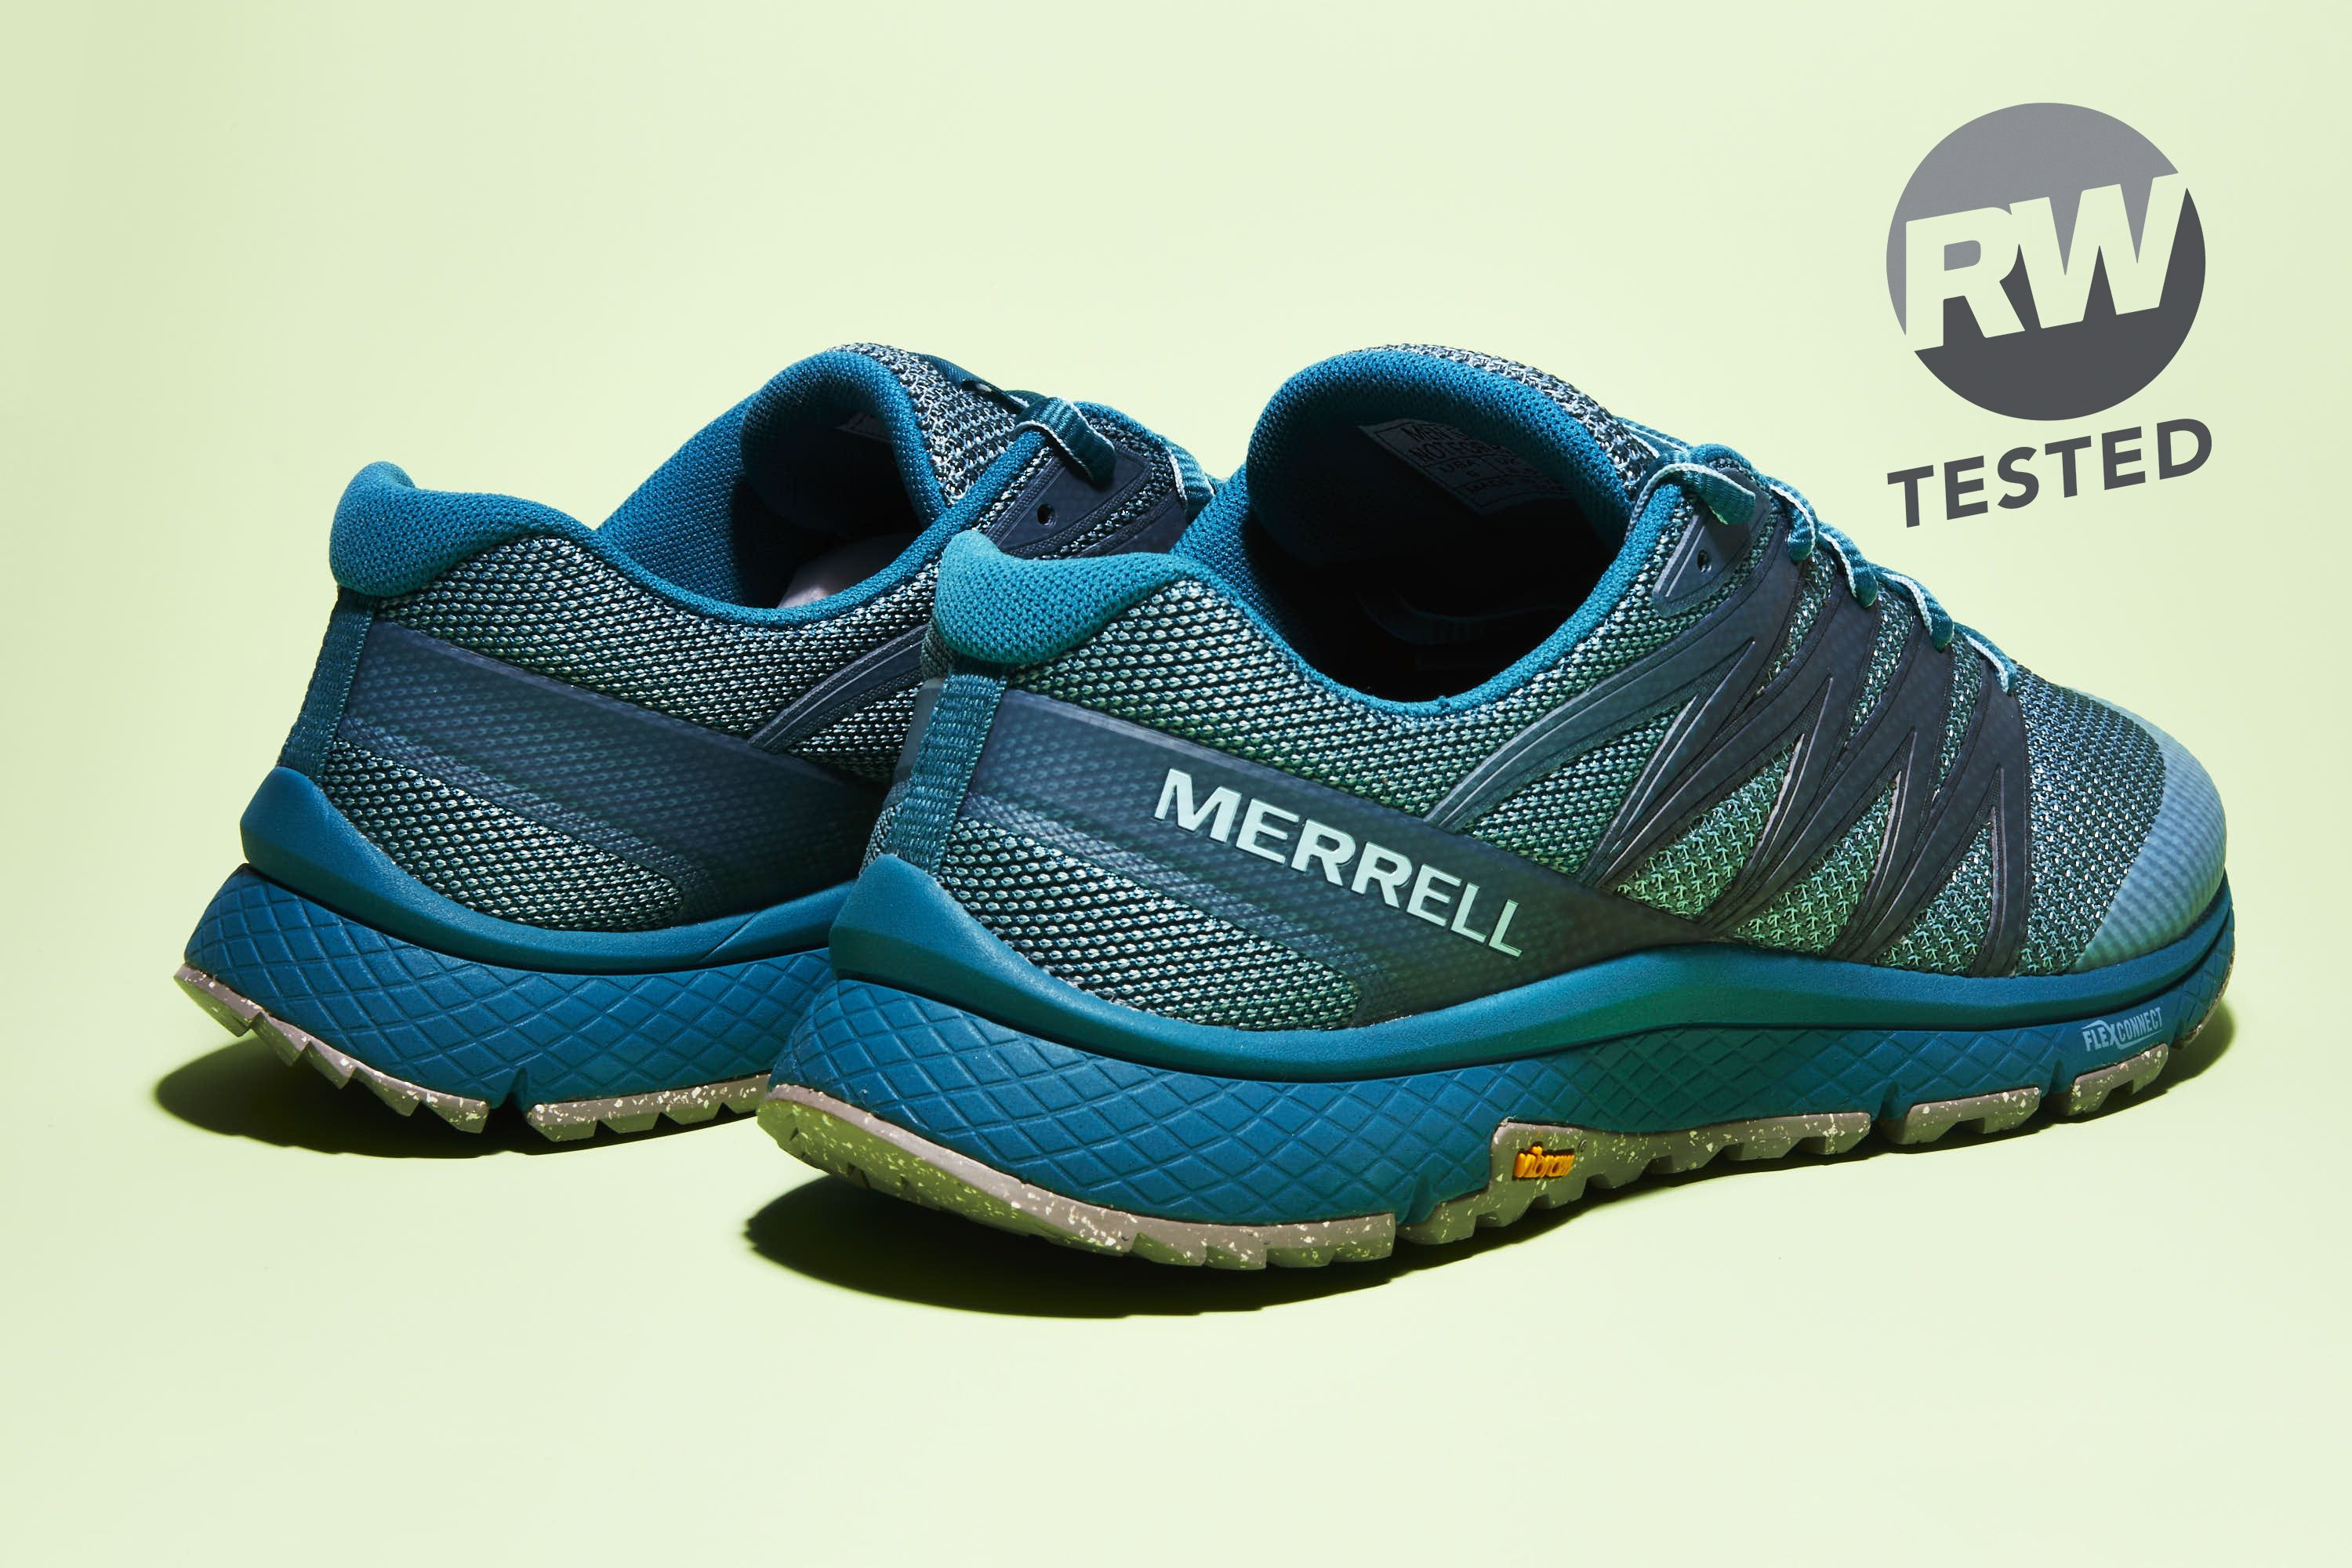 Merrell Makes a Light and Speedy Trail Shoe That's Better for the Planet